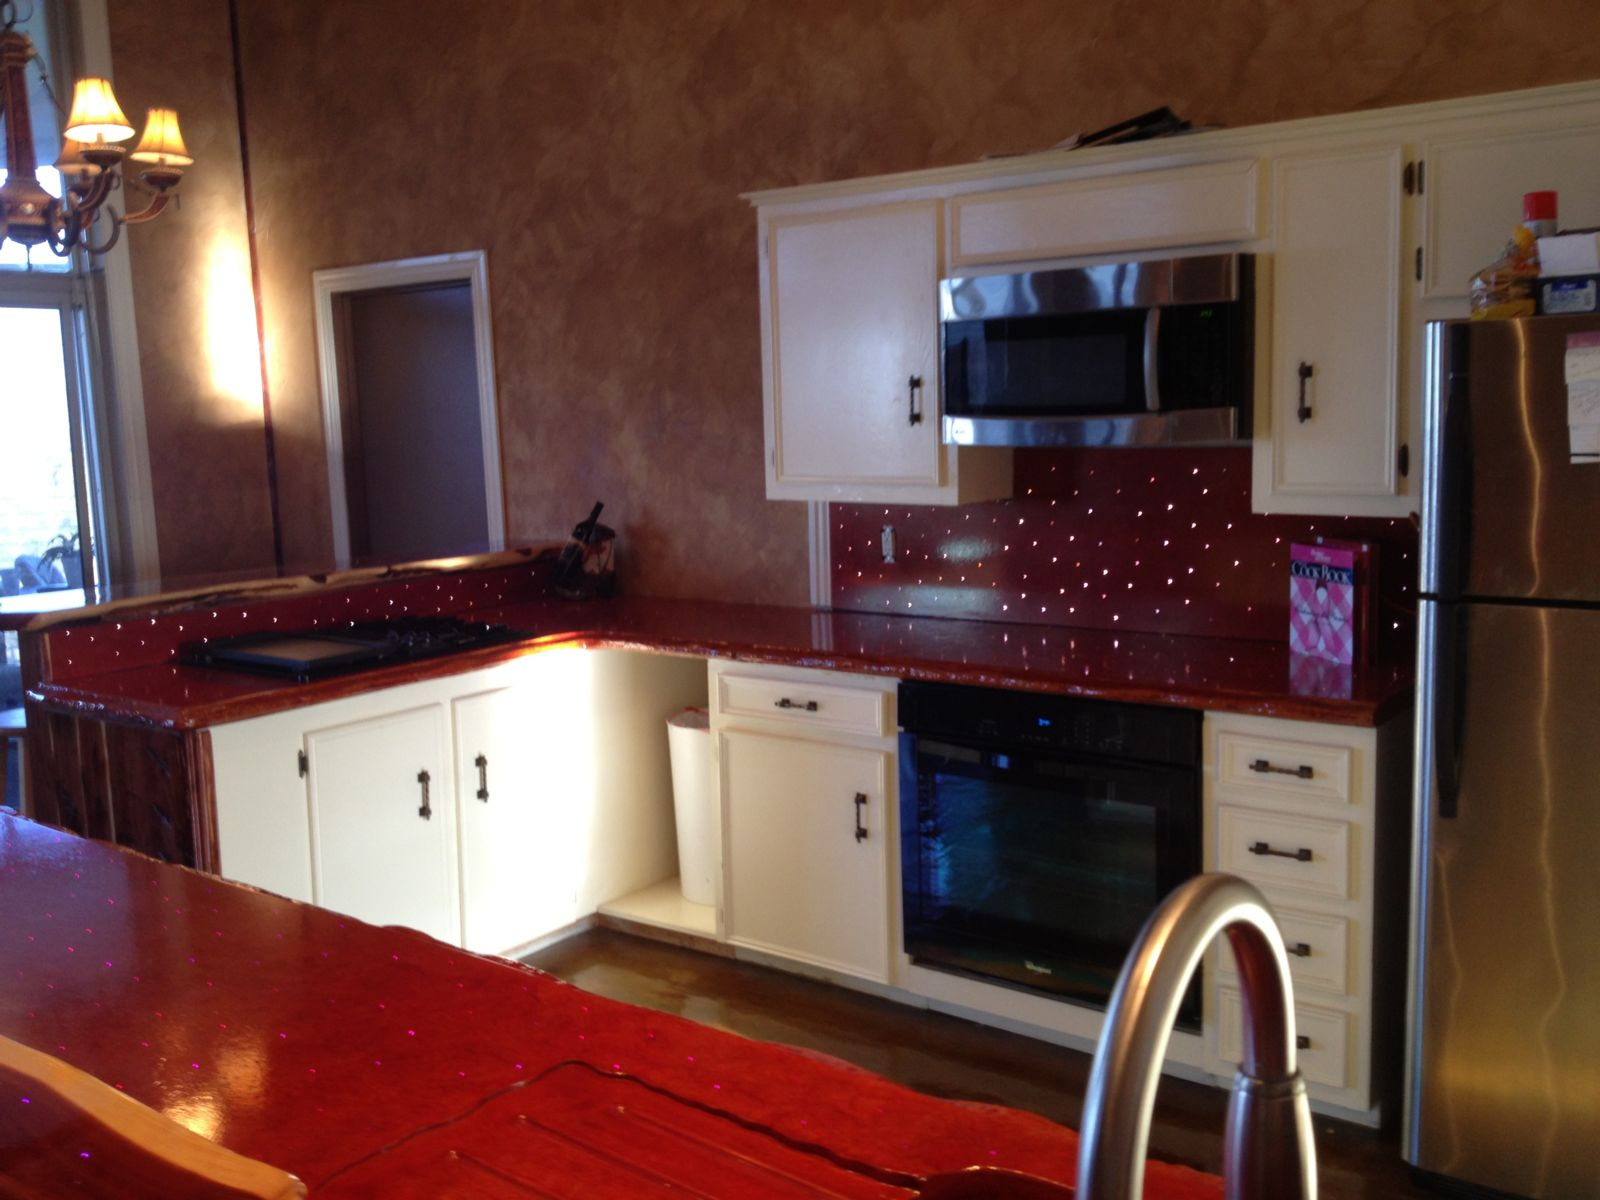 Vibrant red concrete countertops in a kitchen